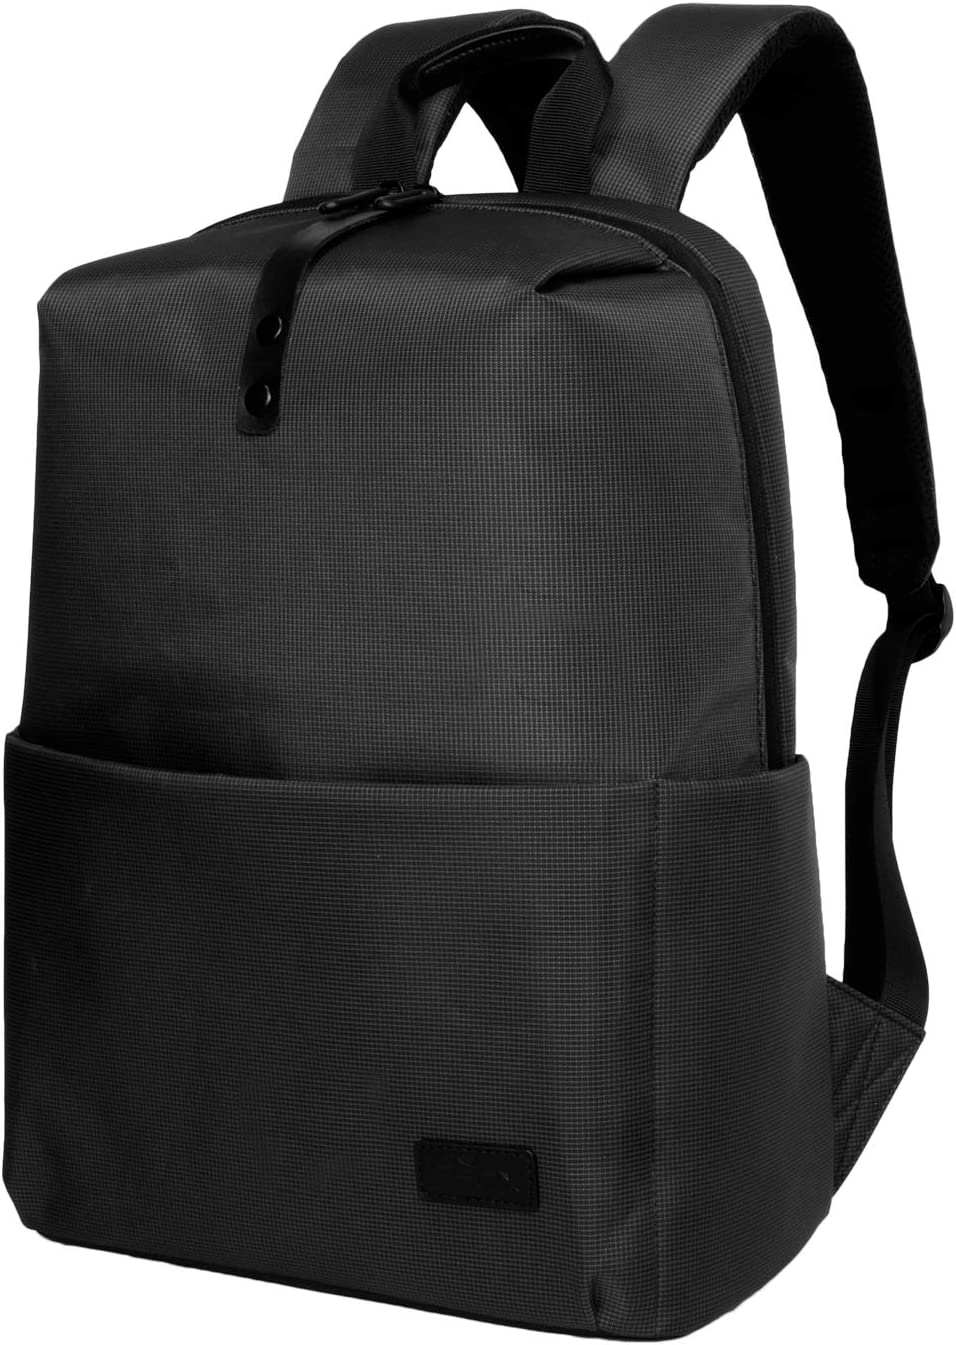 Travel Laptop Backpack Business Backpack Lightweight and Durable Polyester Laptop Backpack for Travel, School Business, 16 Inch Black